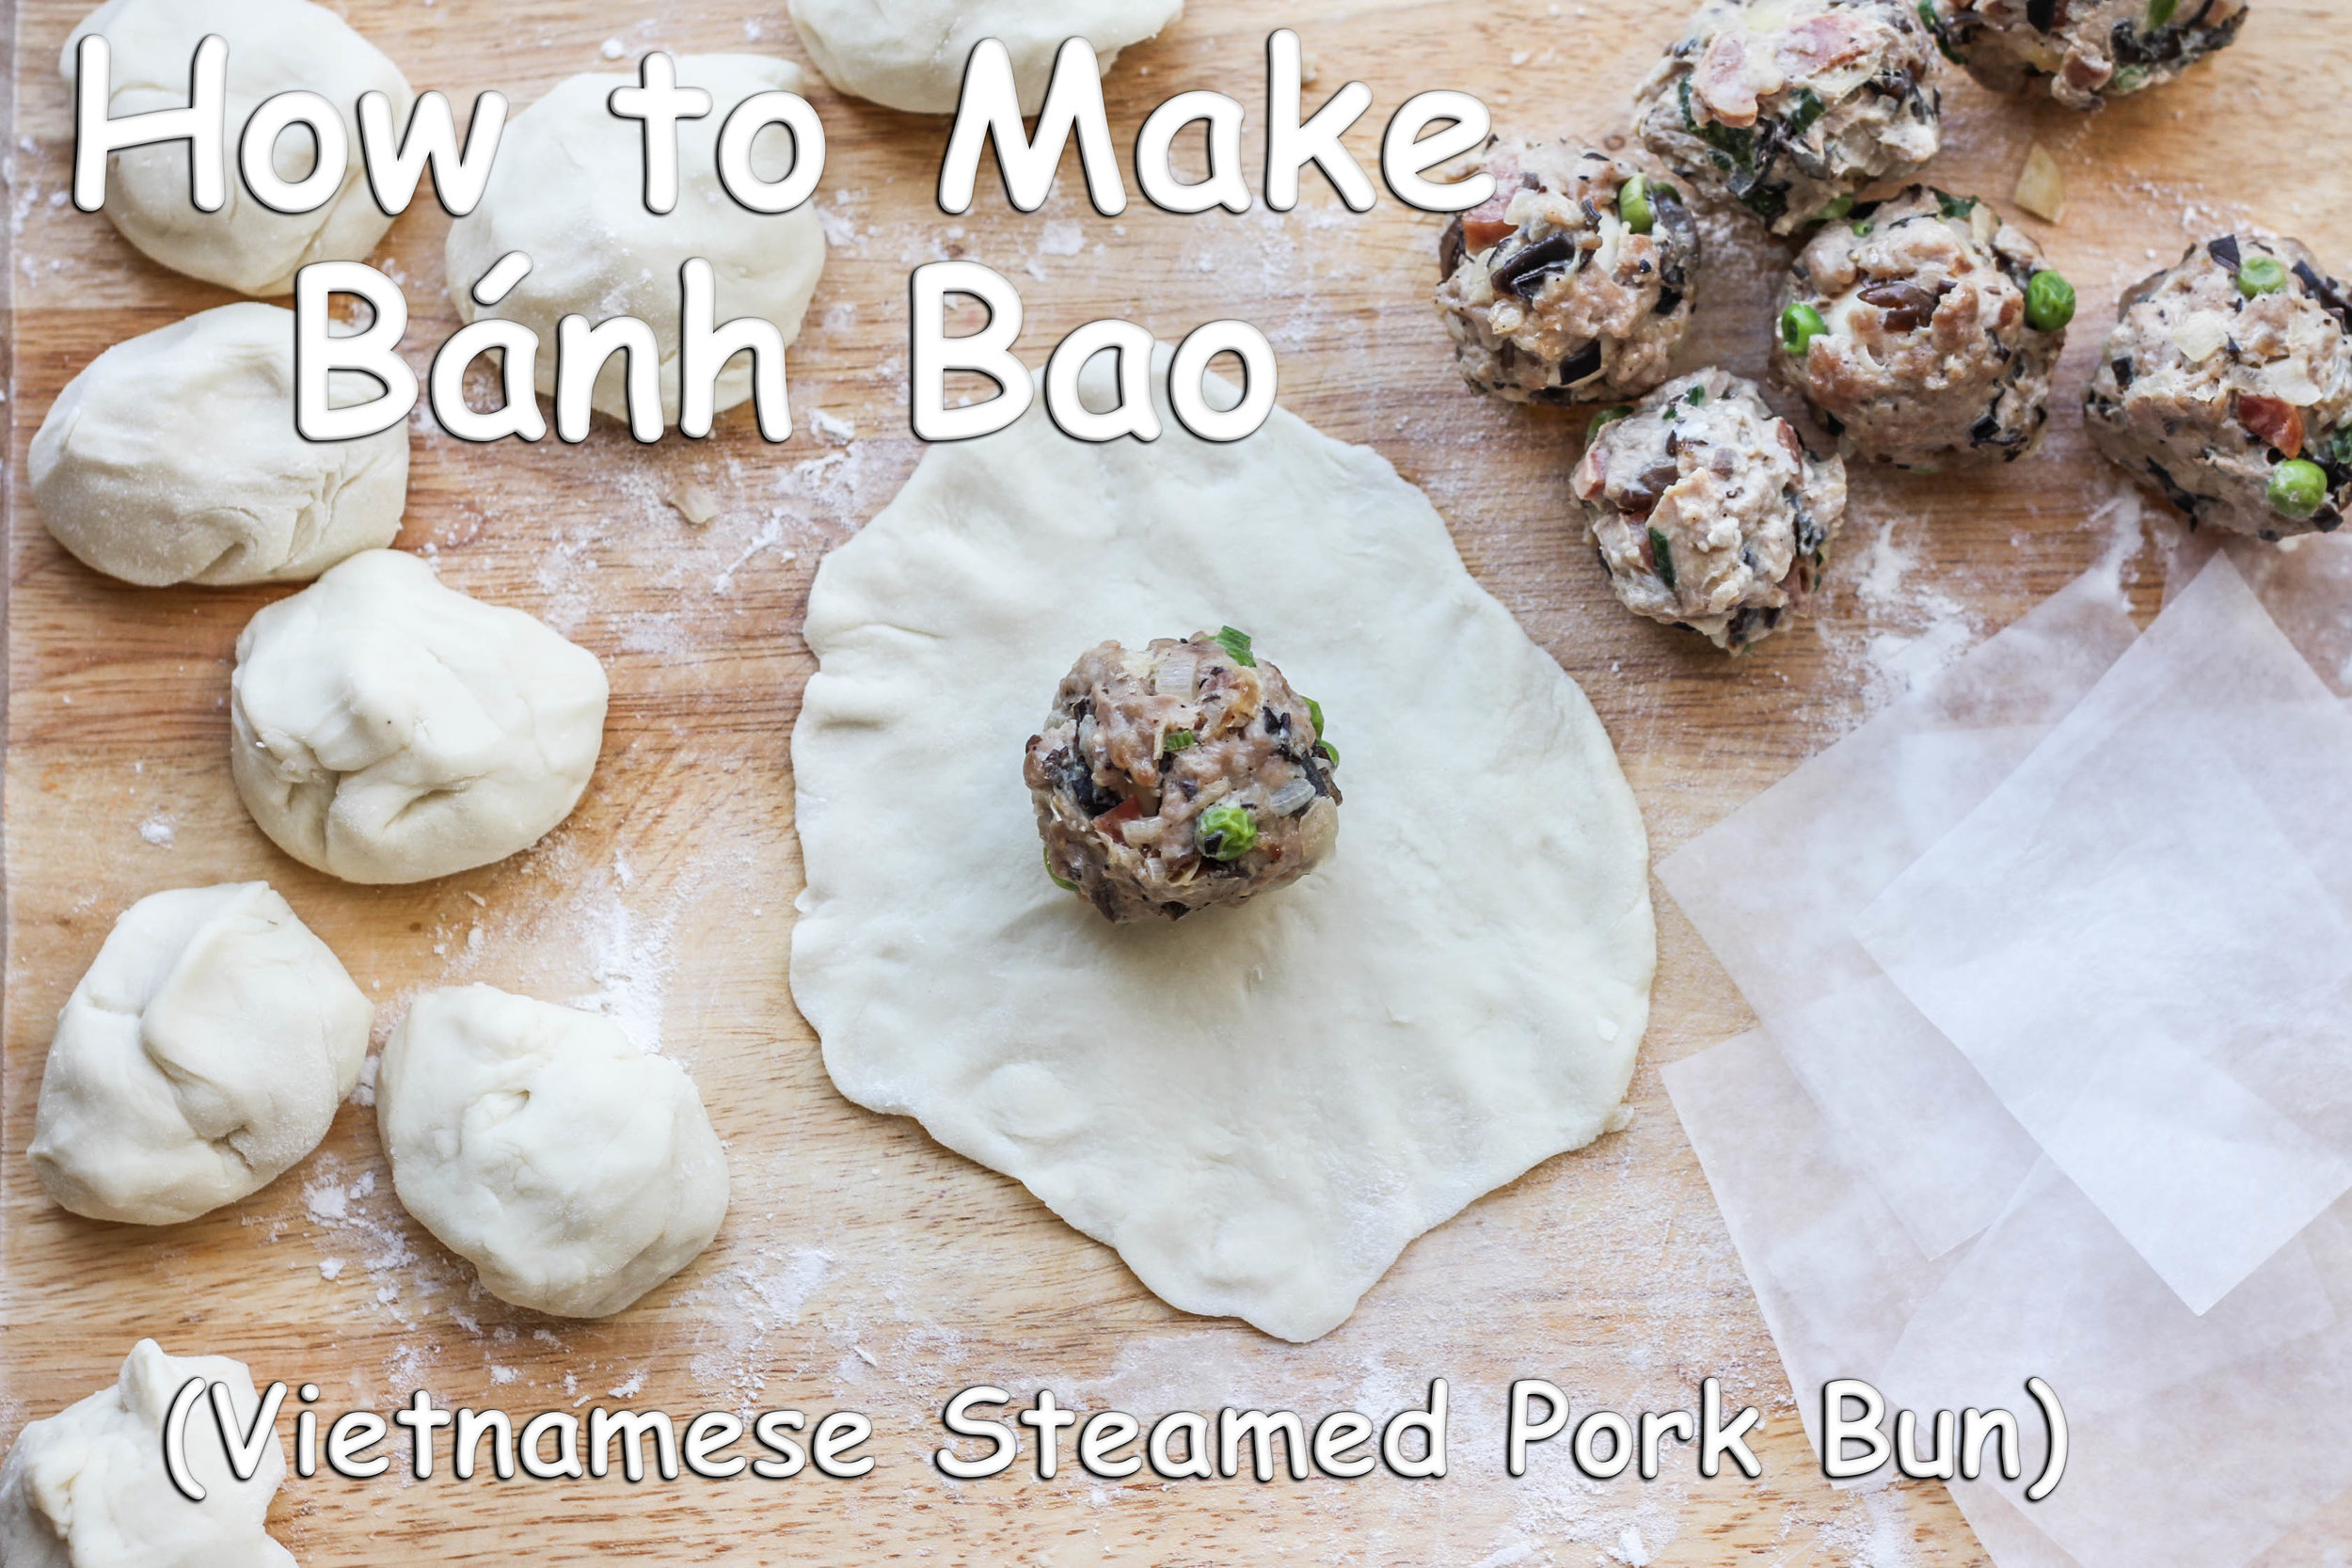 how to make Vietnamese steamed pork buns banh bao